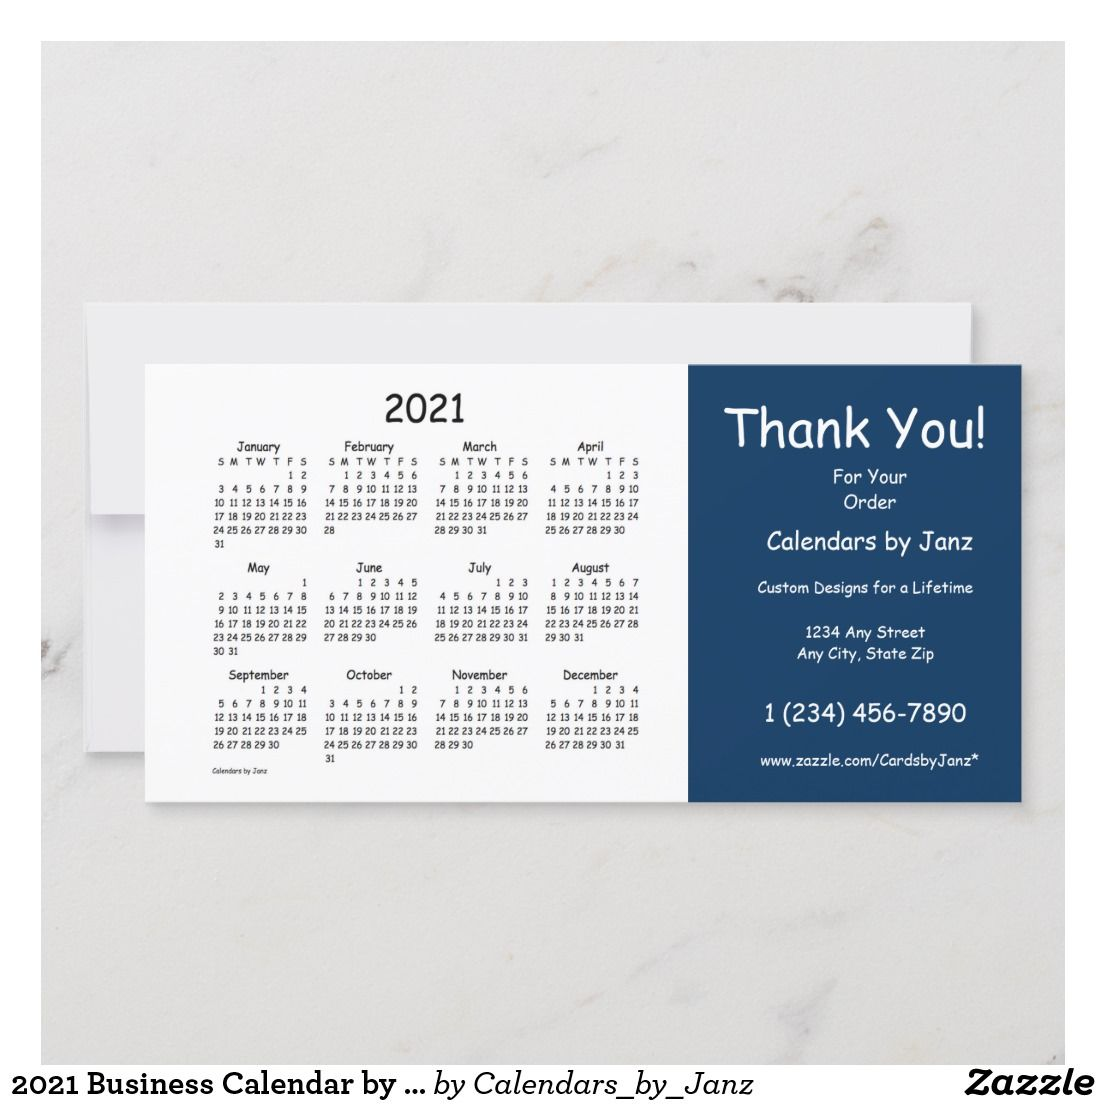 2021 Business Calendar by Janz Thank You Holiday Card